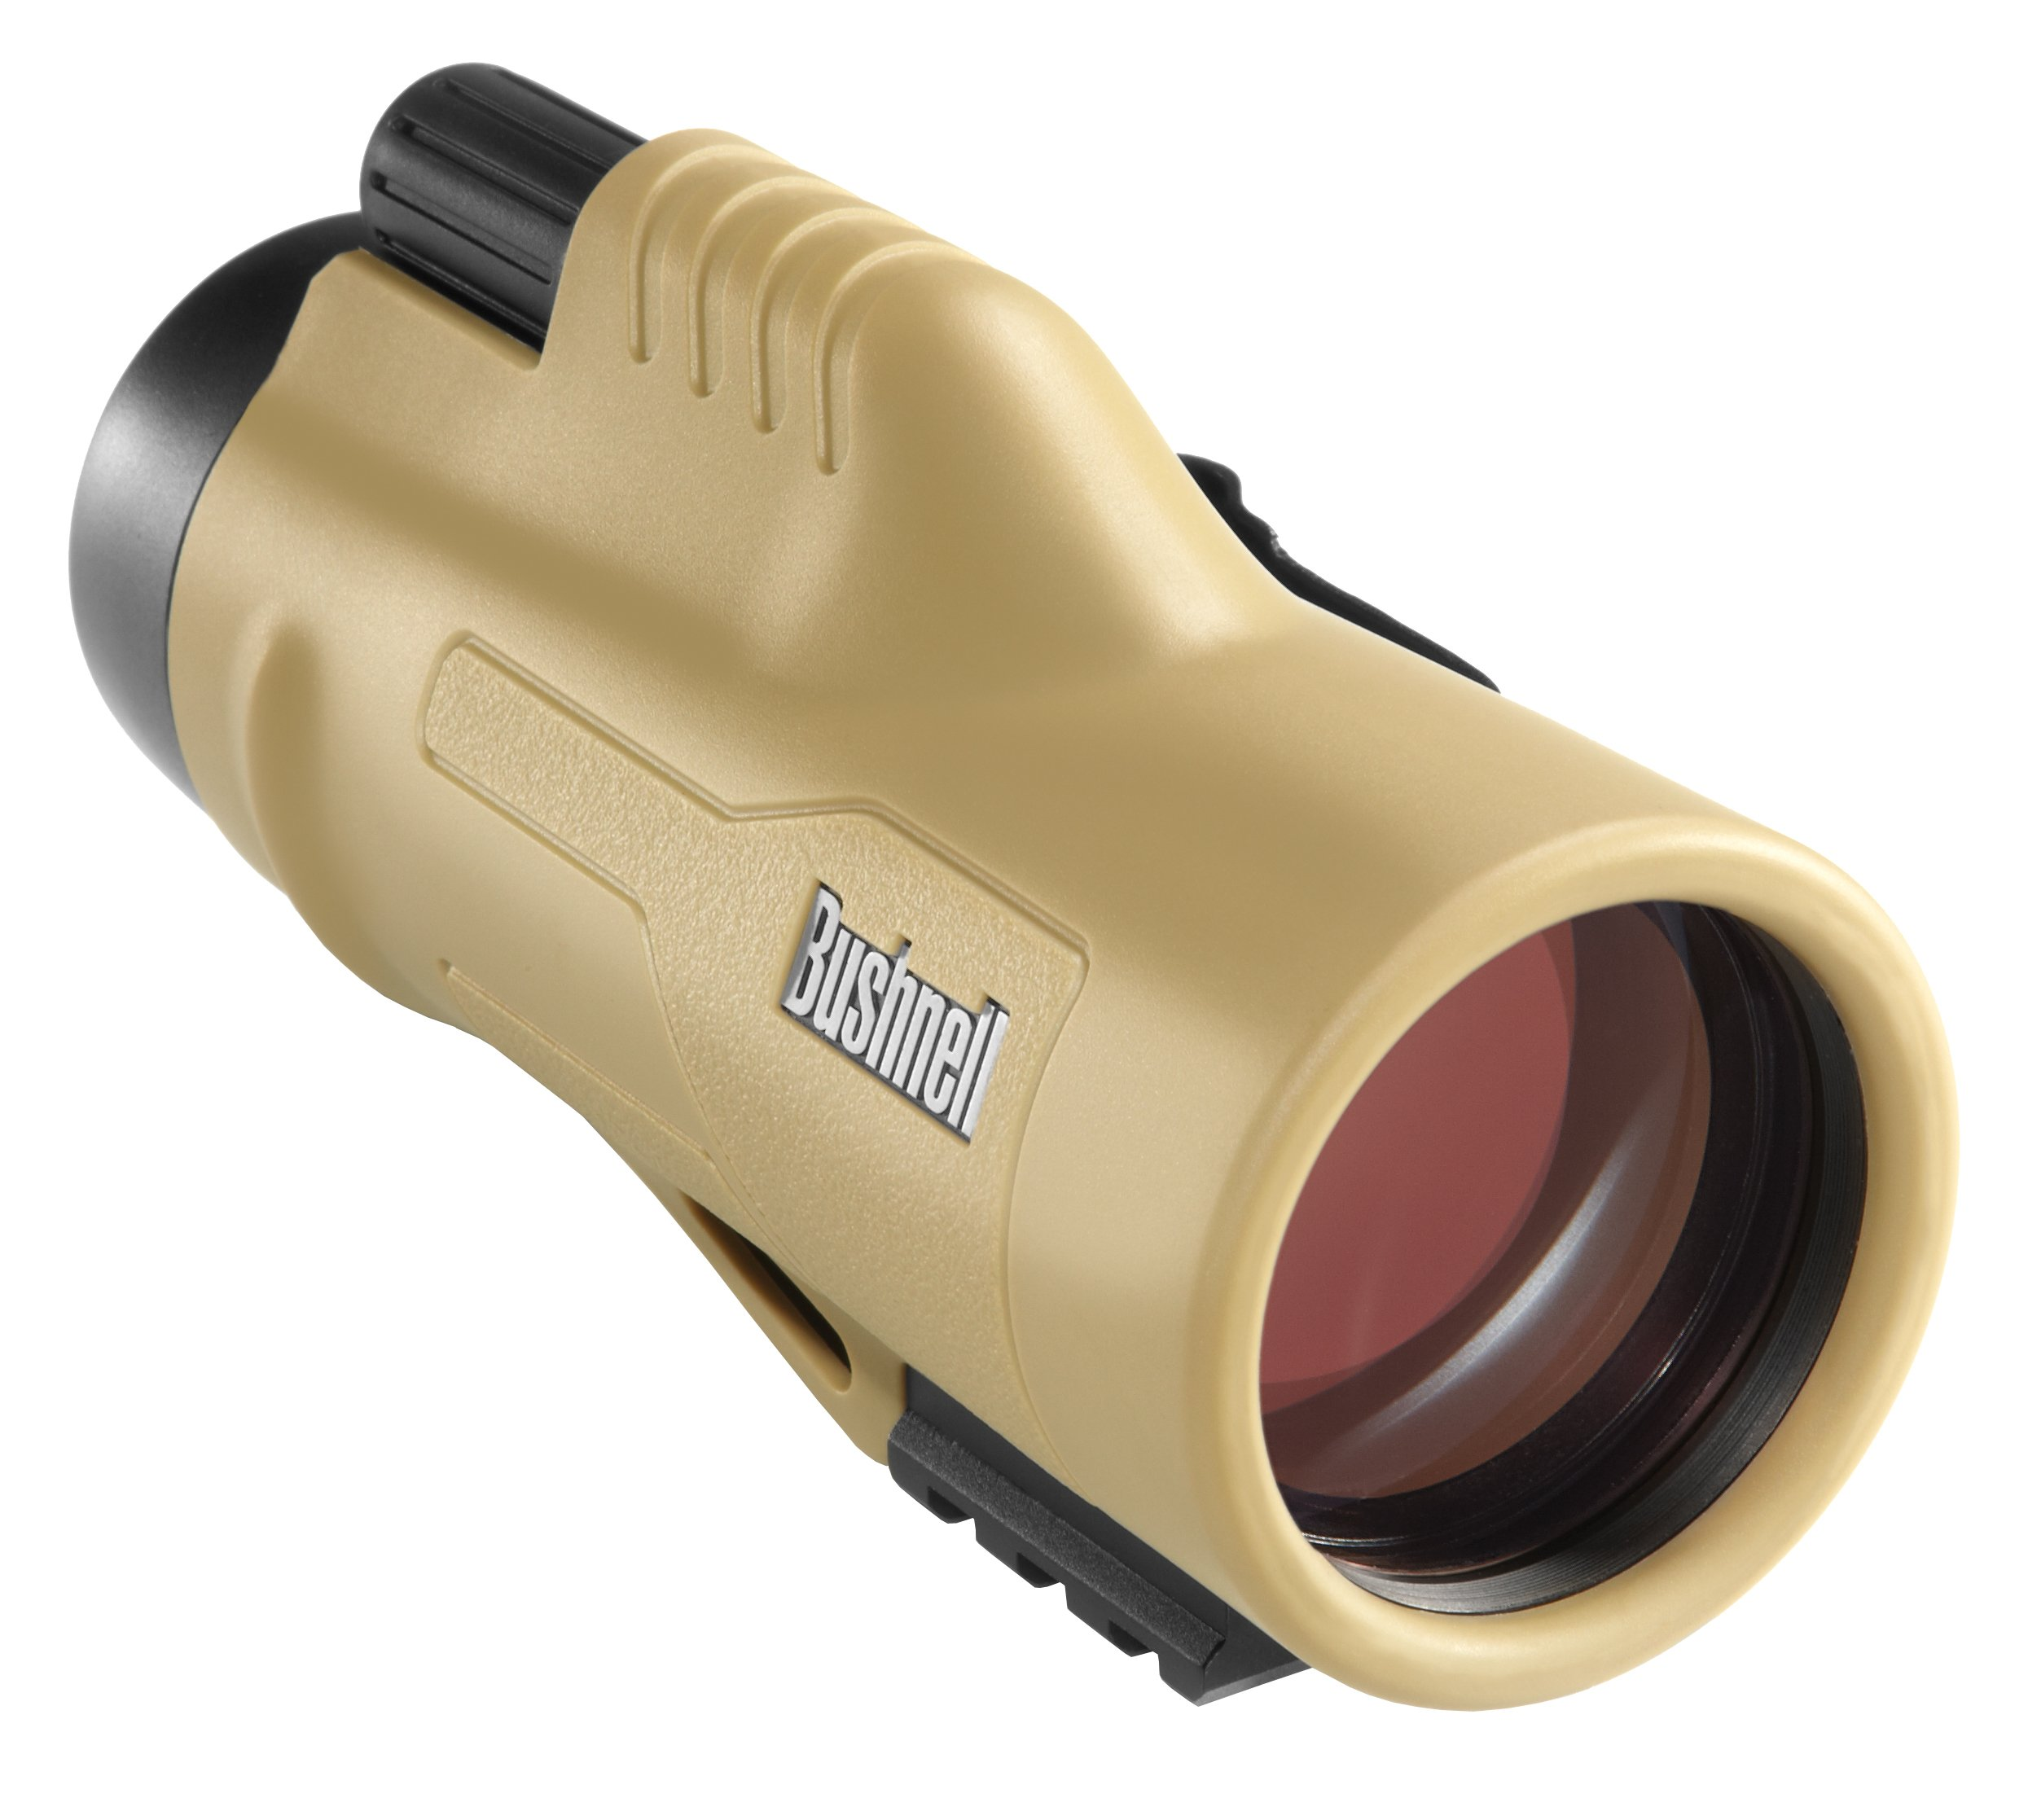 Bushnell Legend Ultra HD 191144 10X42 Tan Monocular Mil-Ret Ed Glass Uwb Box by Bushnell